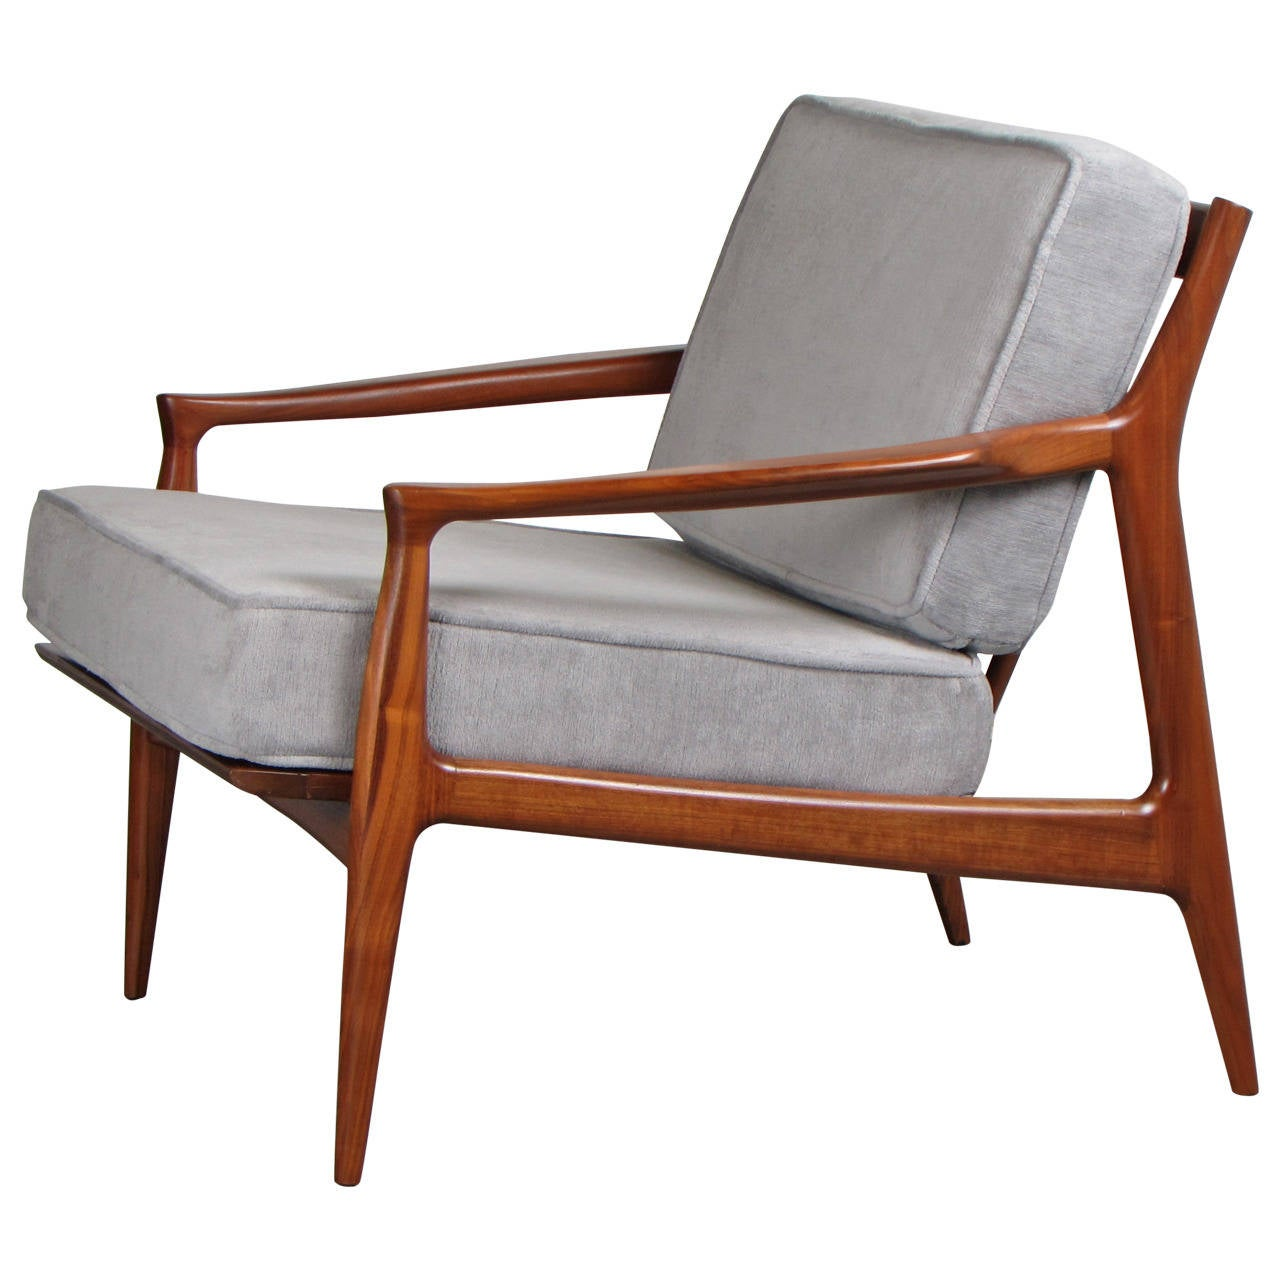 This sculptural pair of lounge chairs by ib kofod larsen is no longer - Sculptural Danish Modern Teak Lounge Chair By Ib Kofod Larsen 1960s 1